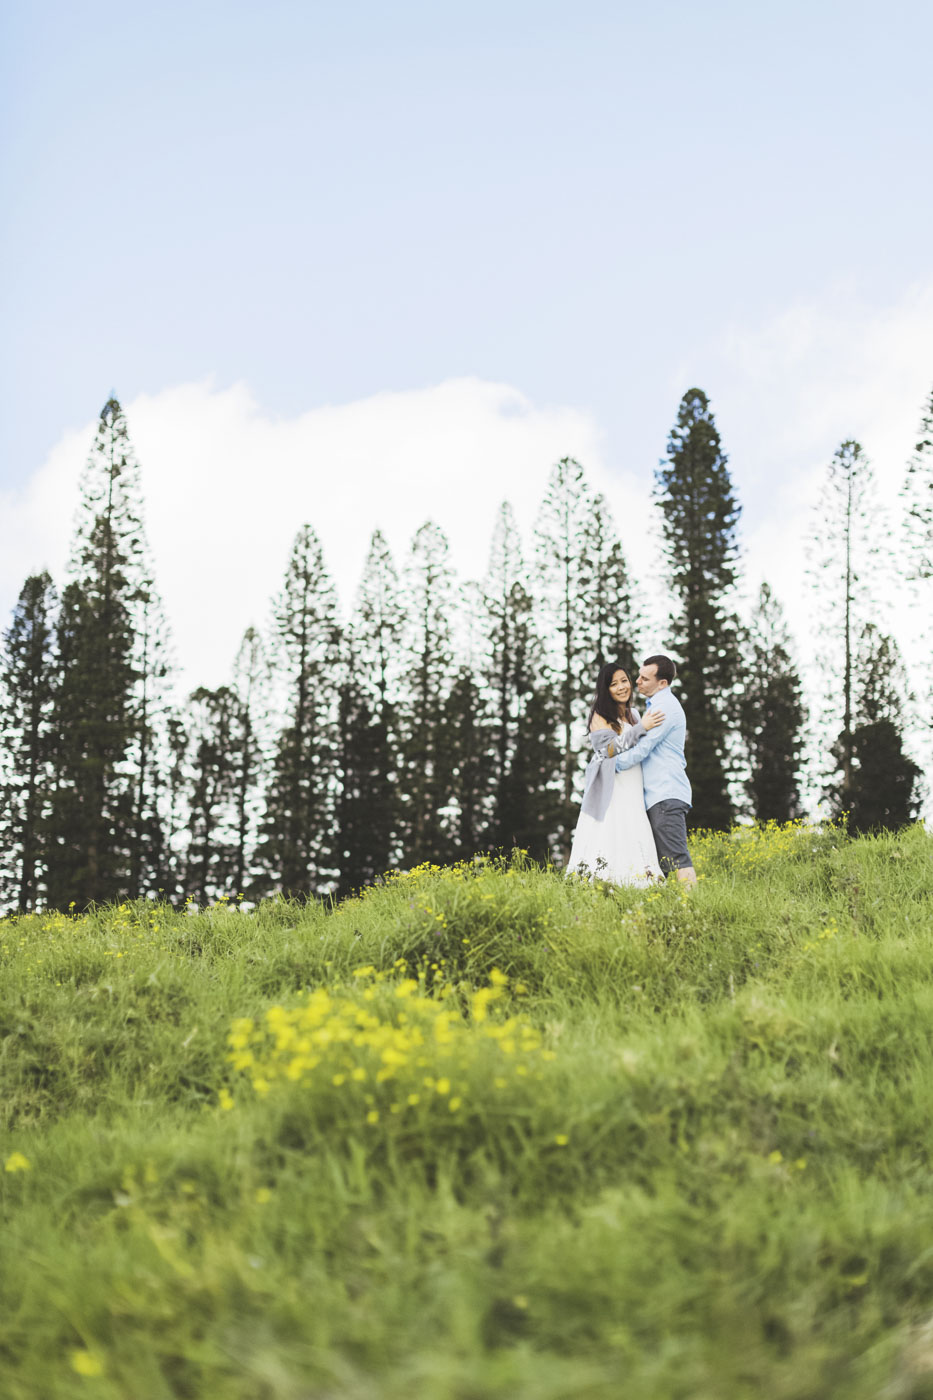 Fine art hawaii maui engagement _22.jpg